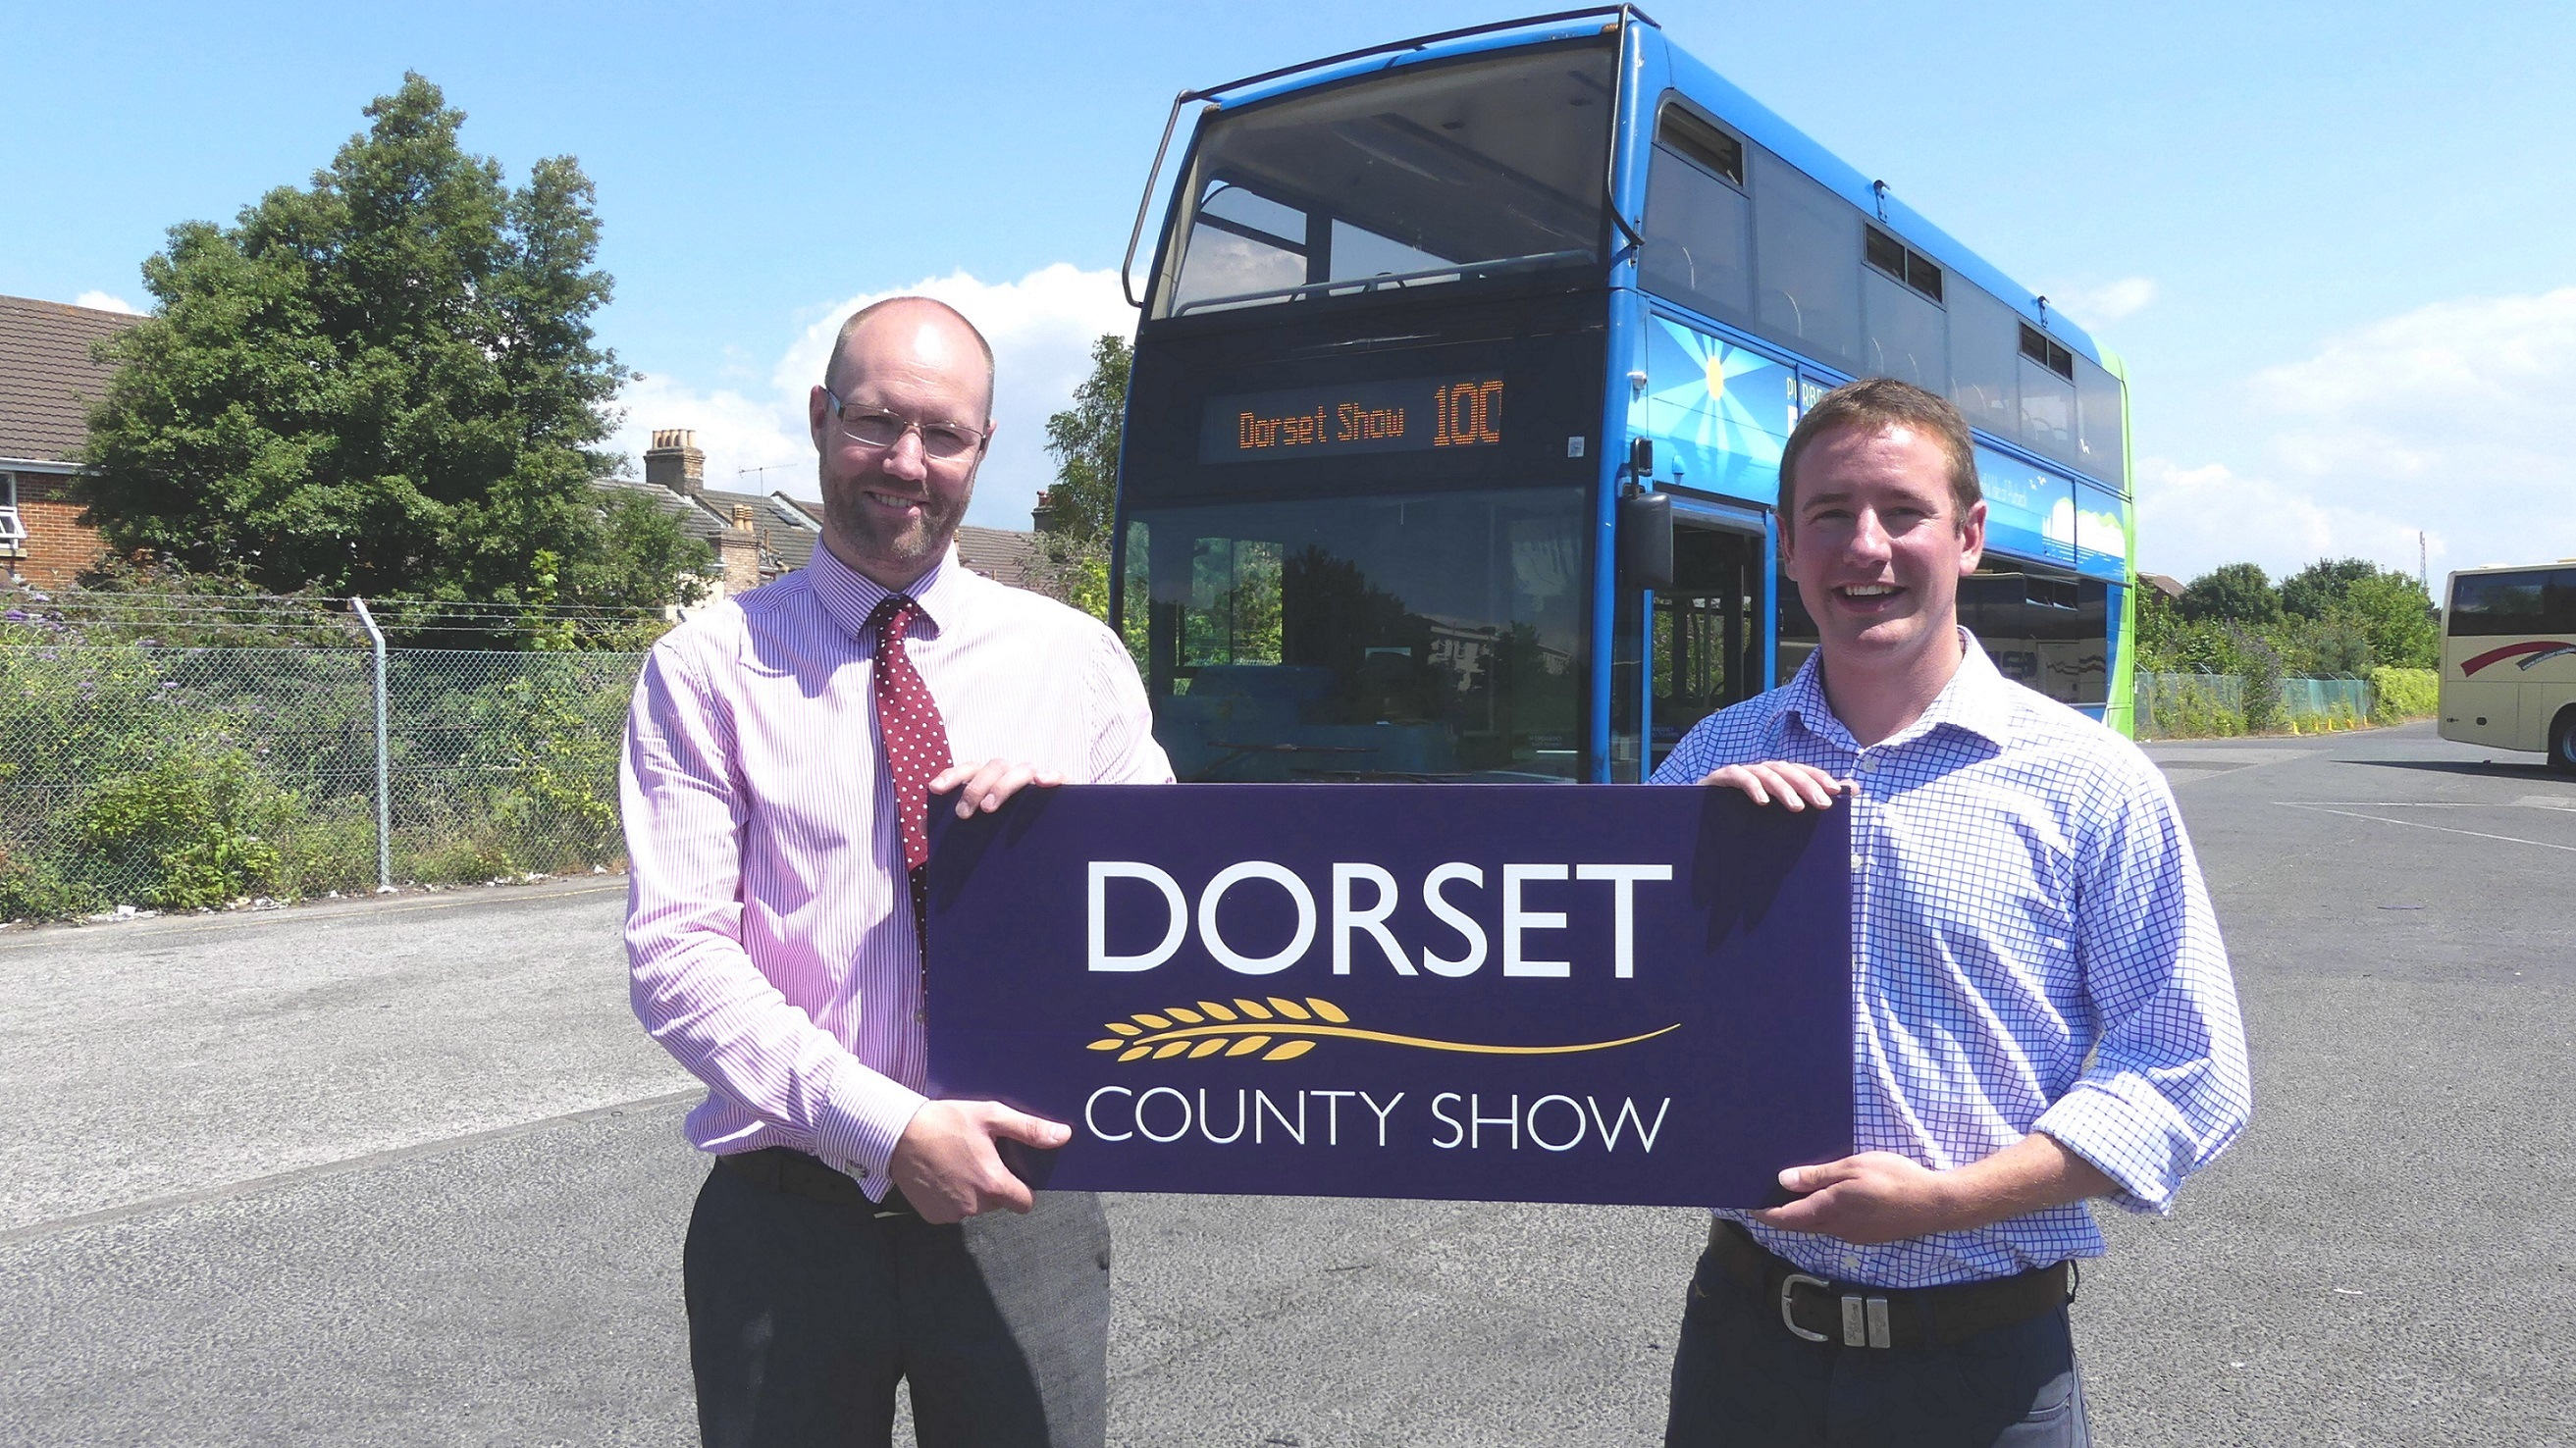 Adam Keen, general manager of Damory Coaches and Will Hyde, show secretary